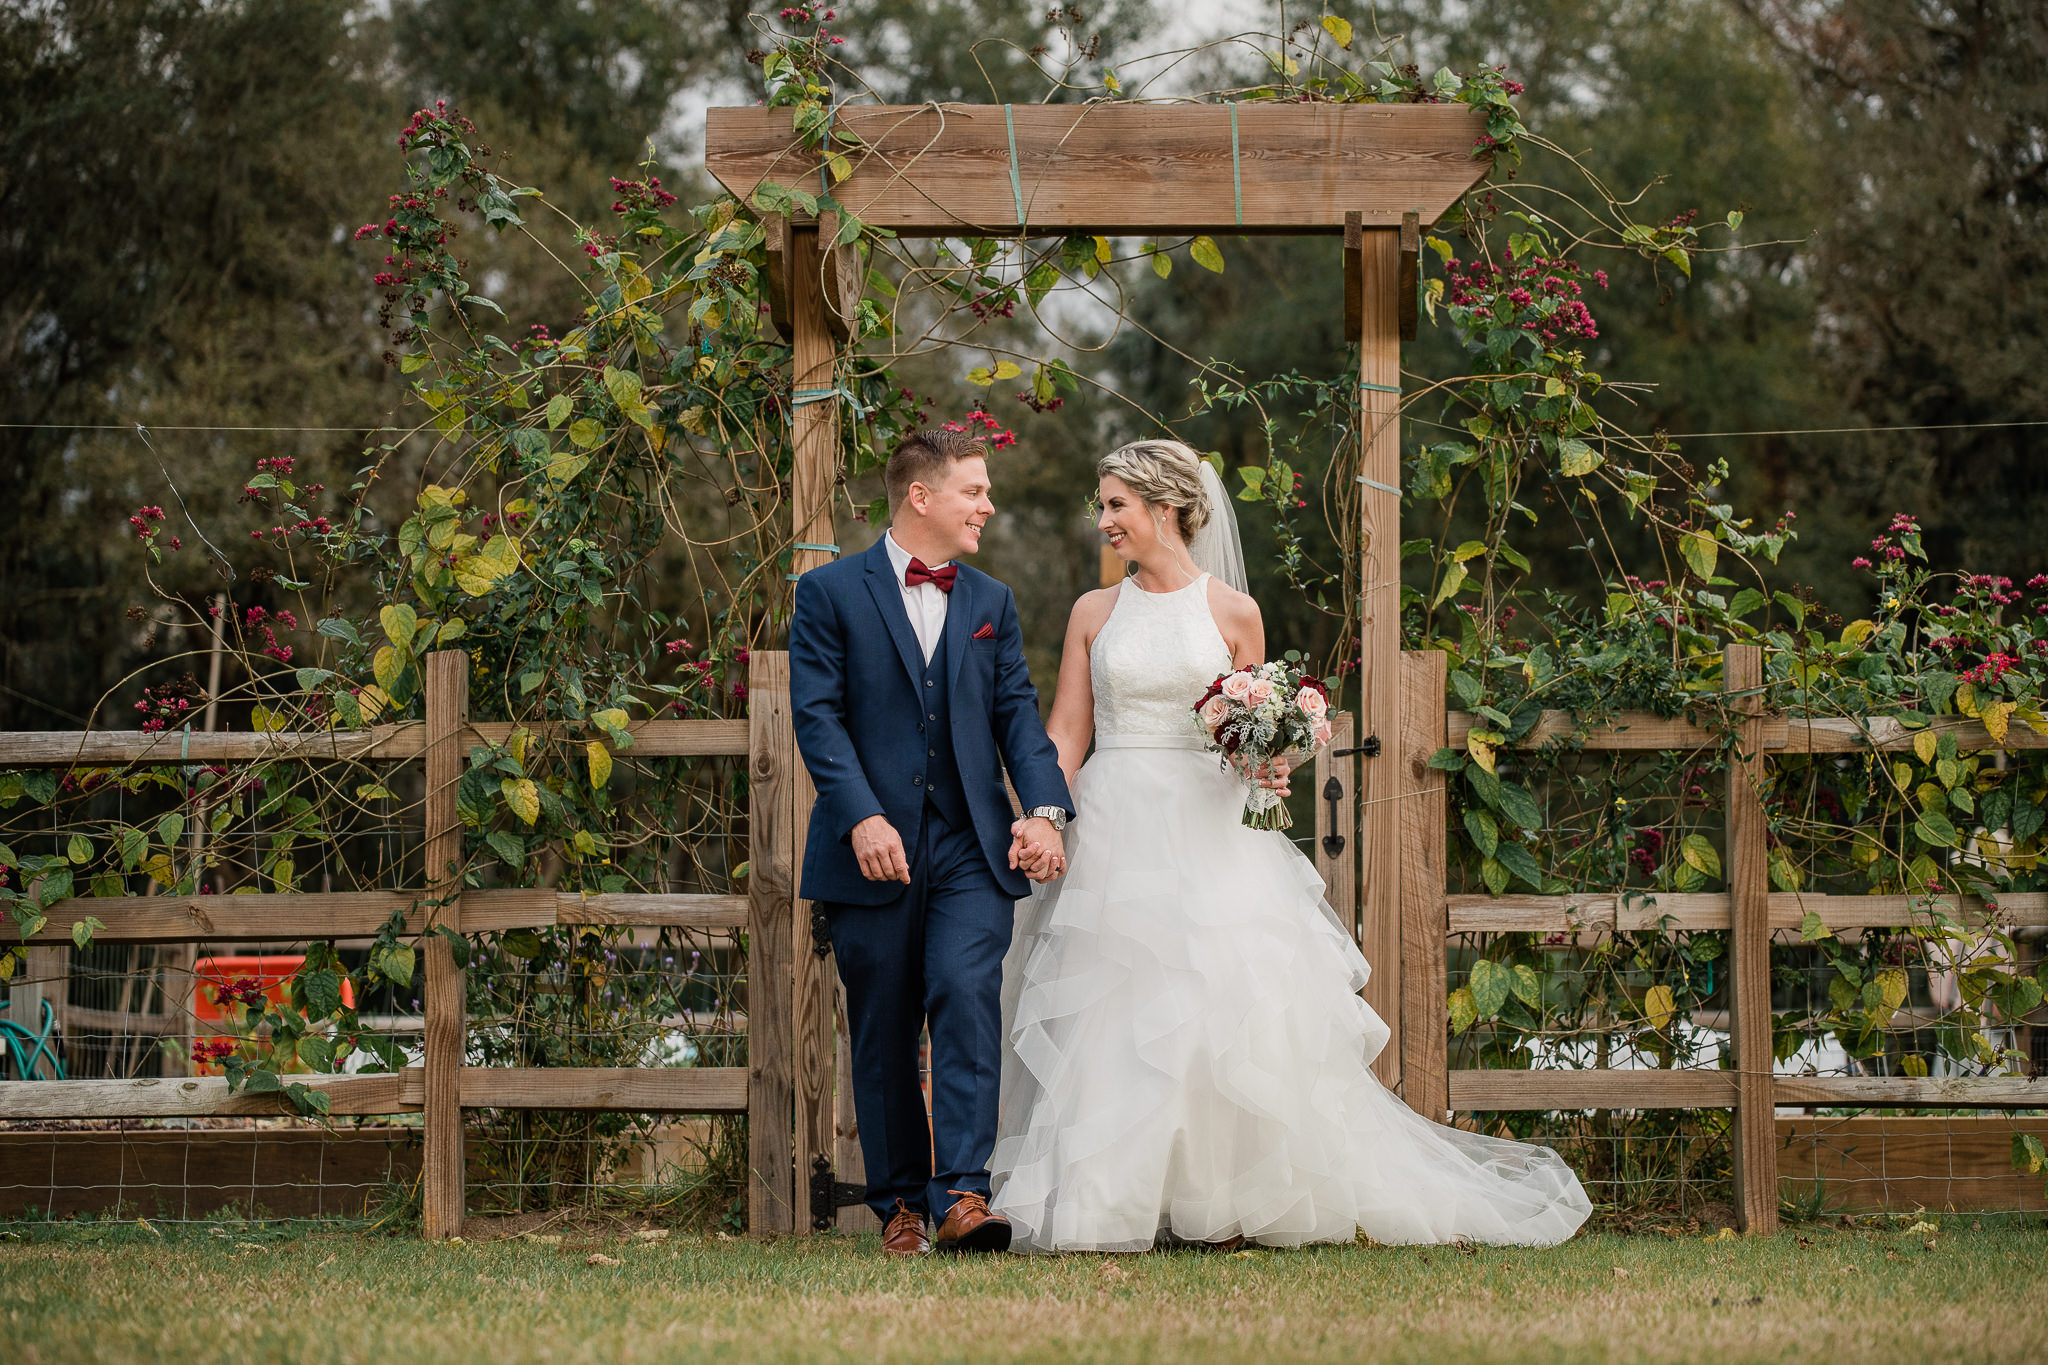 TAMPA_WEDDING_PHOTOGRAPHER_DRMZ_SPARROW_BARN_40.jpg